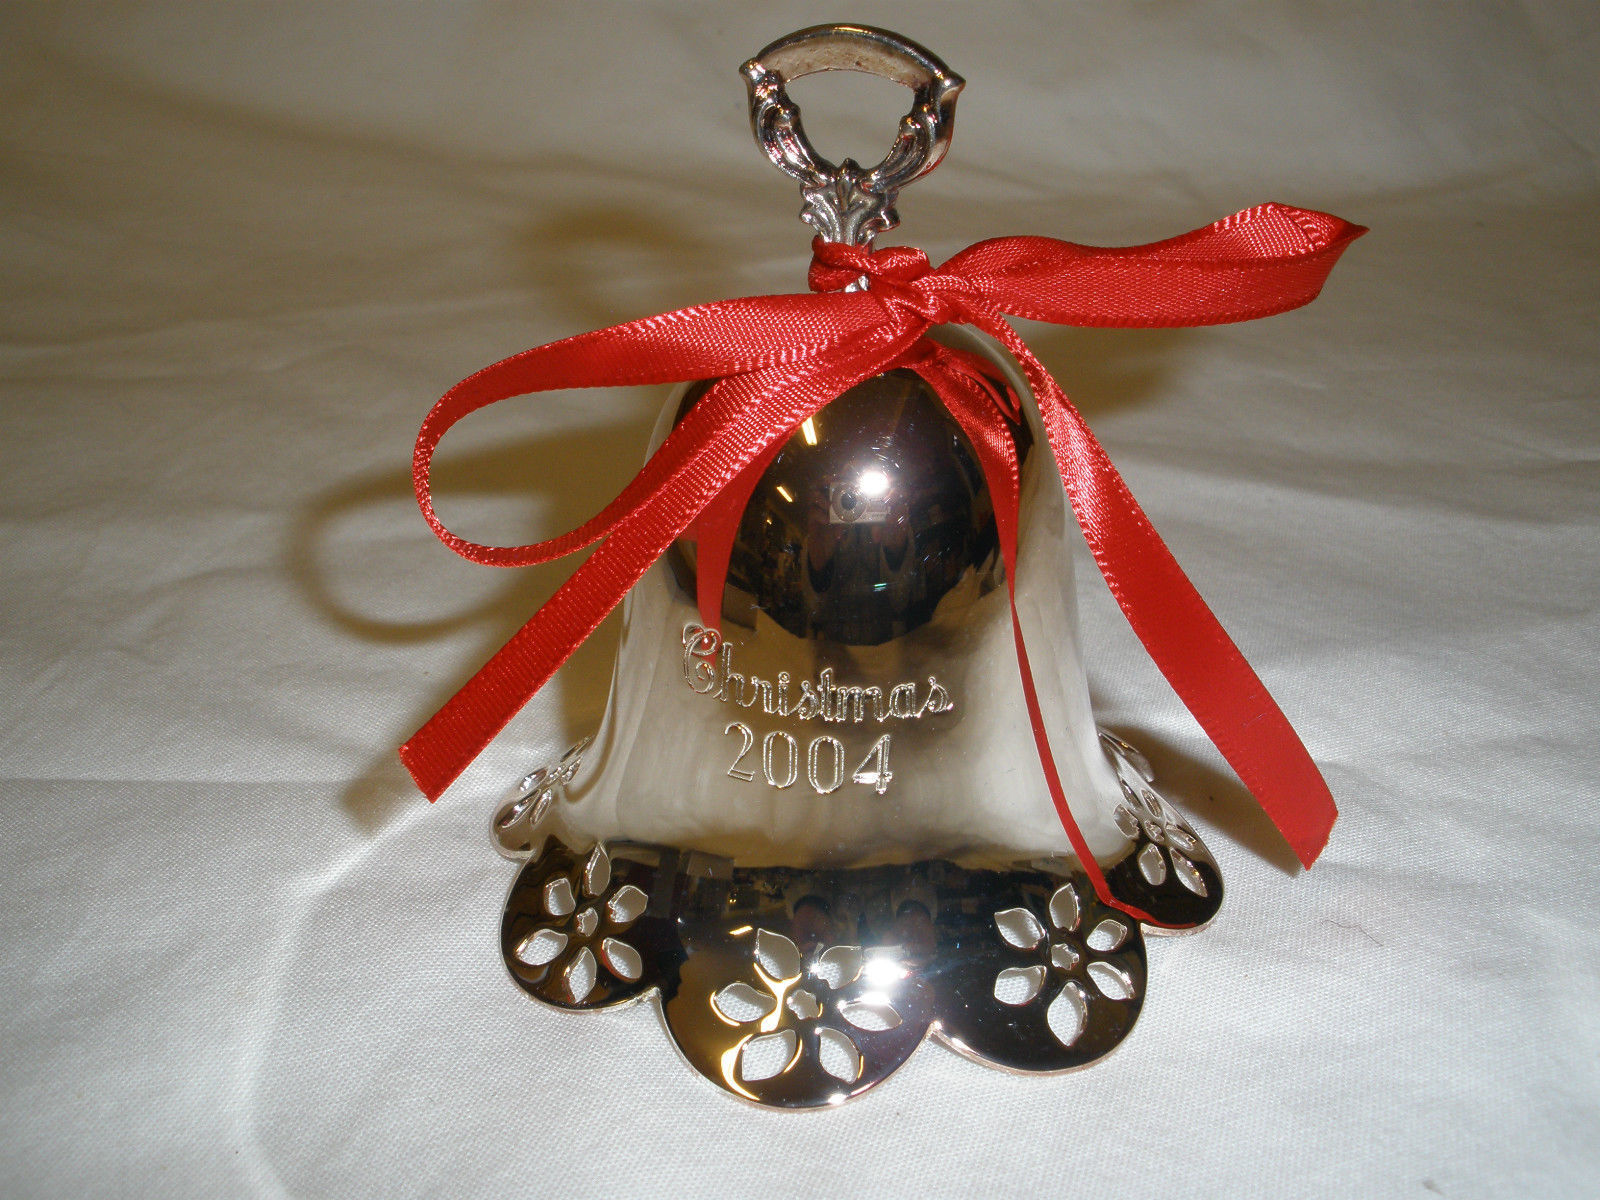 Towle Silver 2004 Christmas Bell 25th Anniversary Limited Edition  Bell Annual